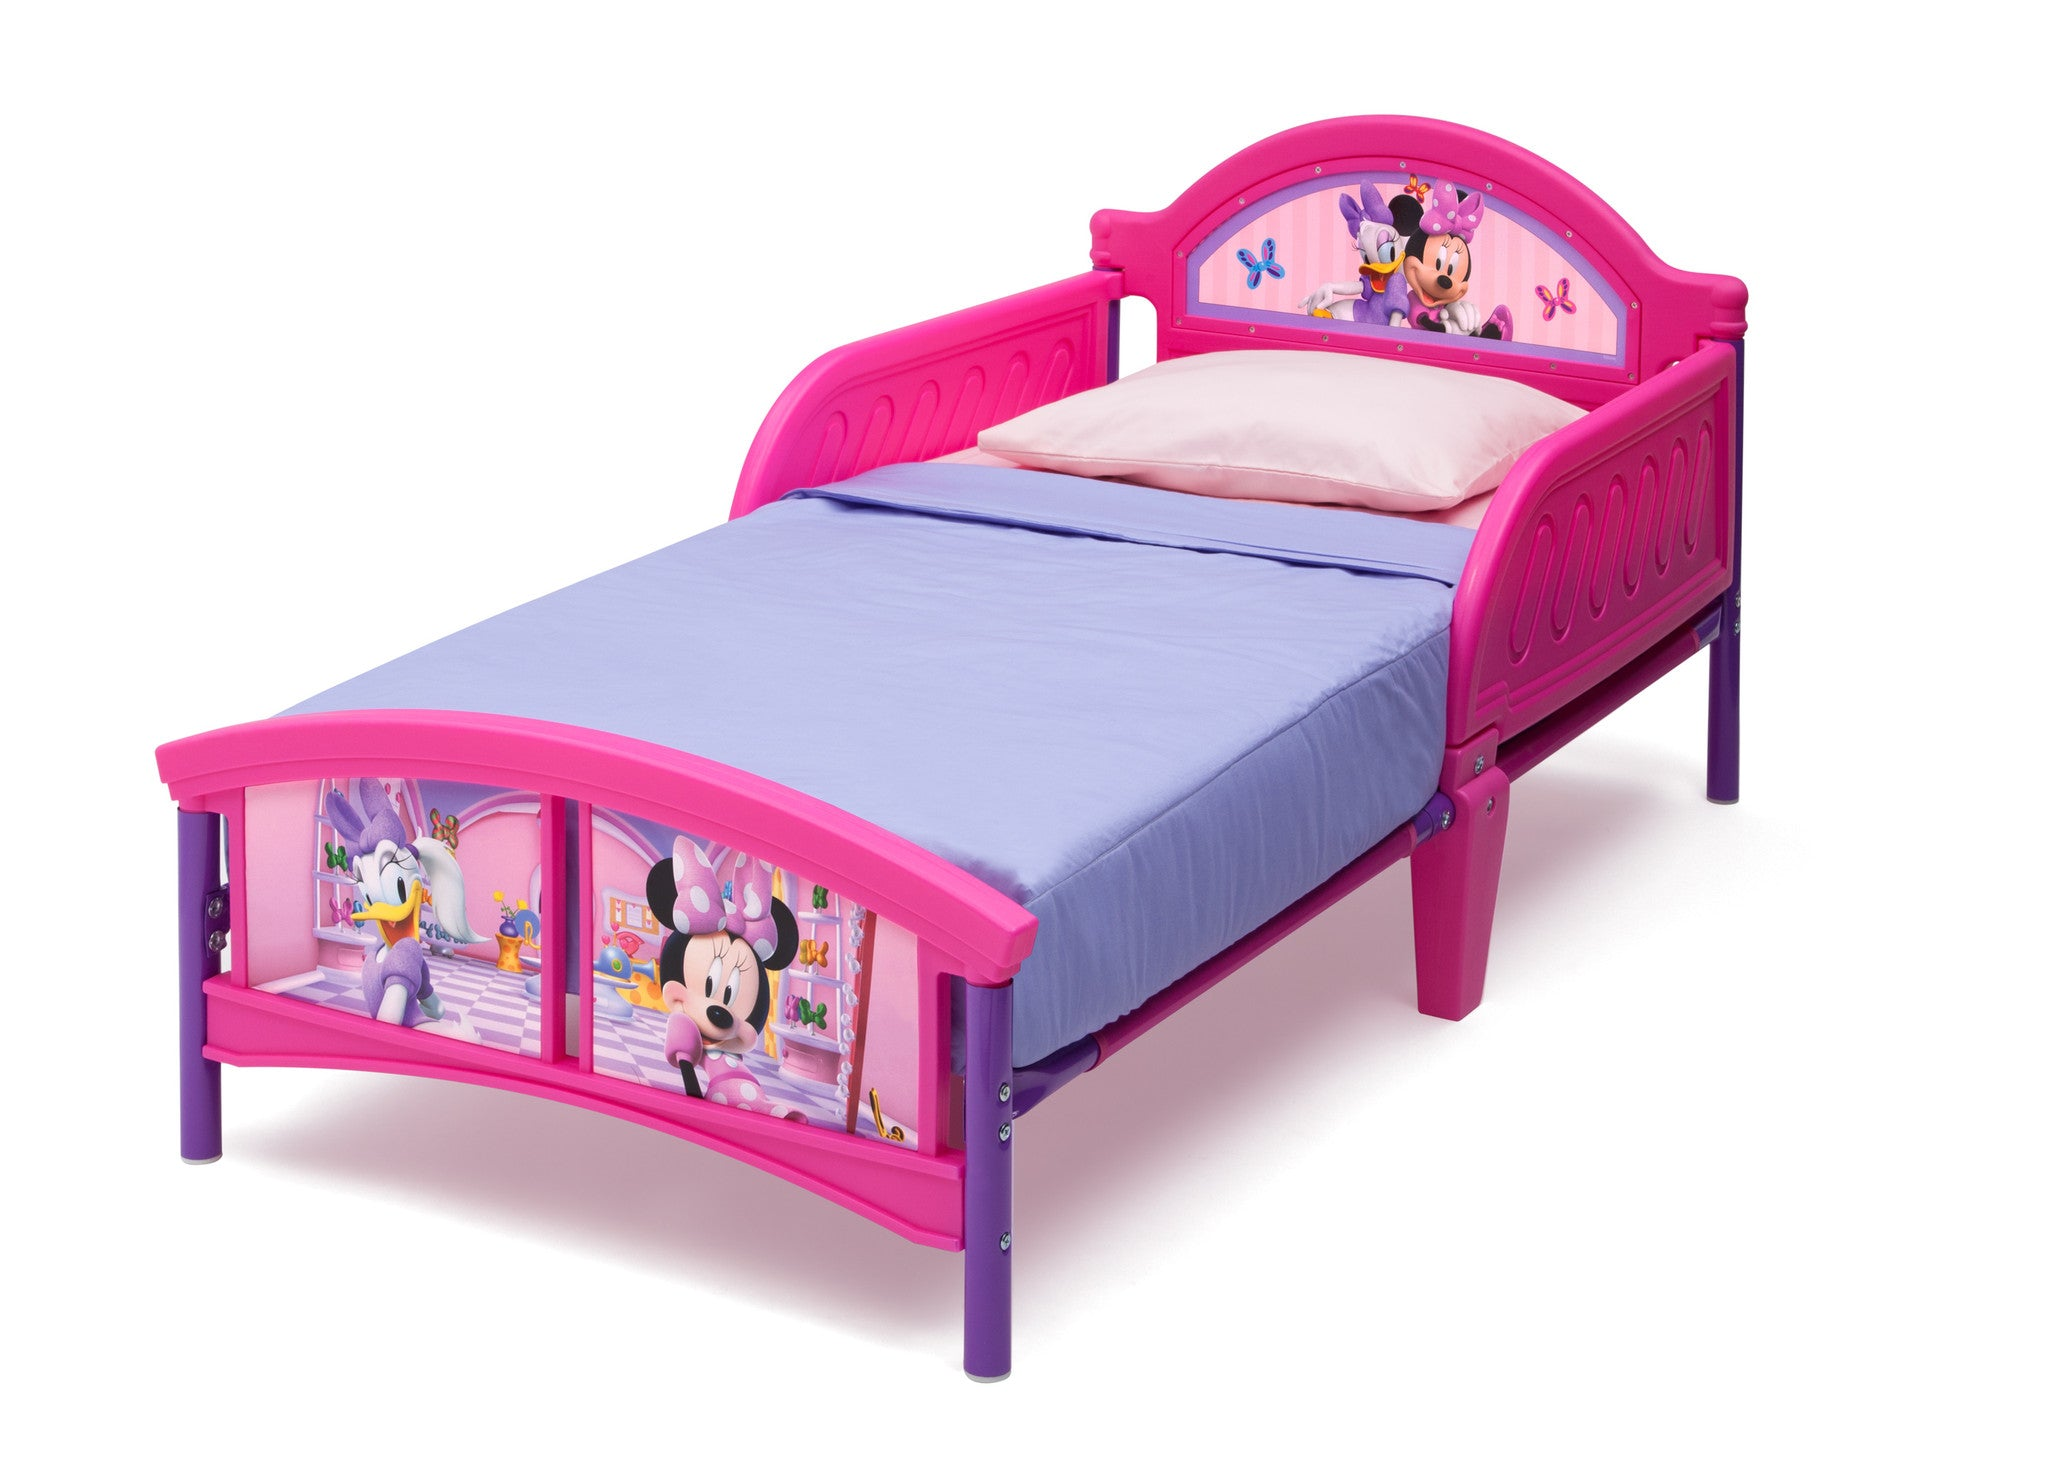 Minnie Mouse Bedroom Set delta children eu pim